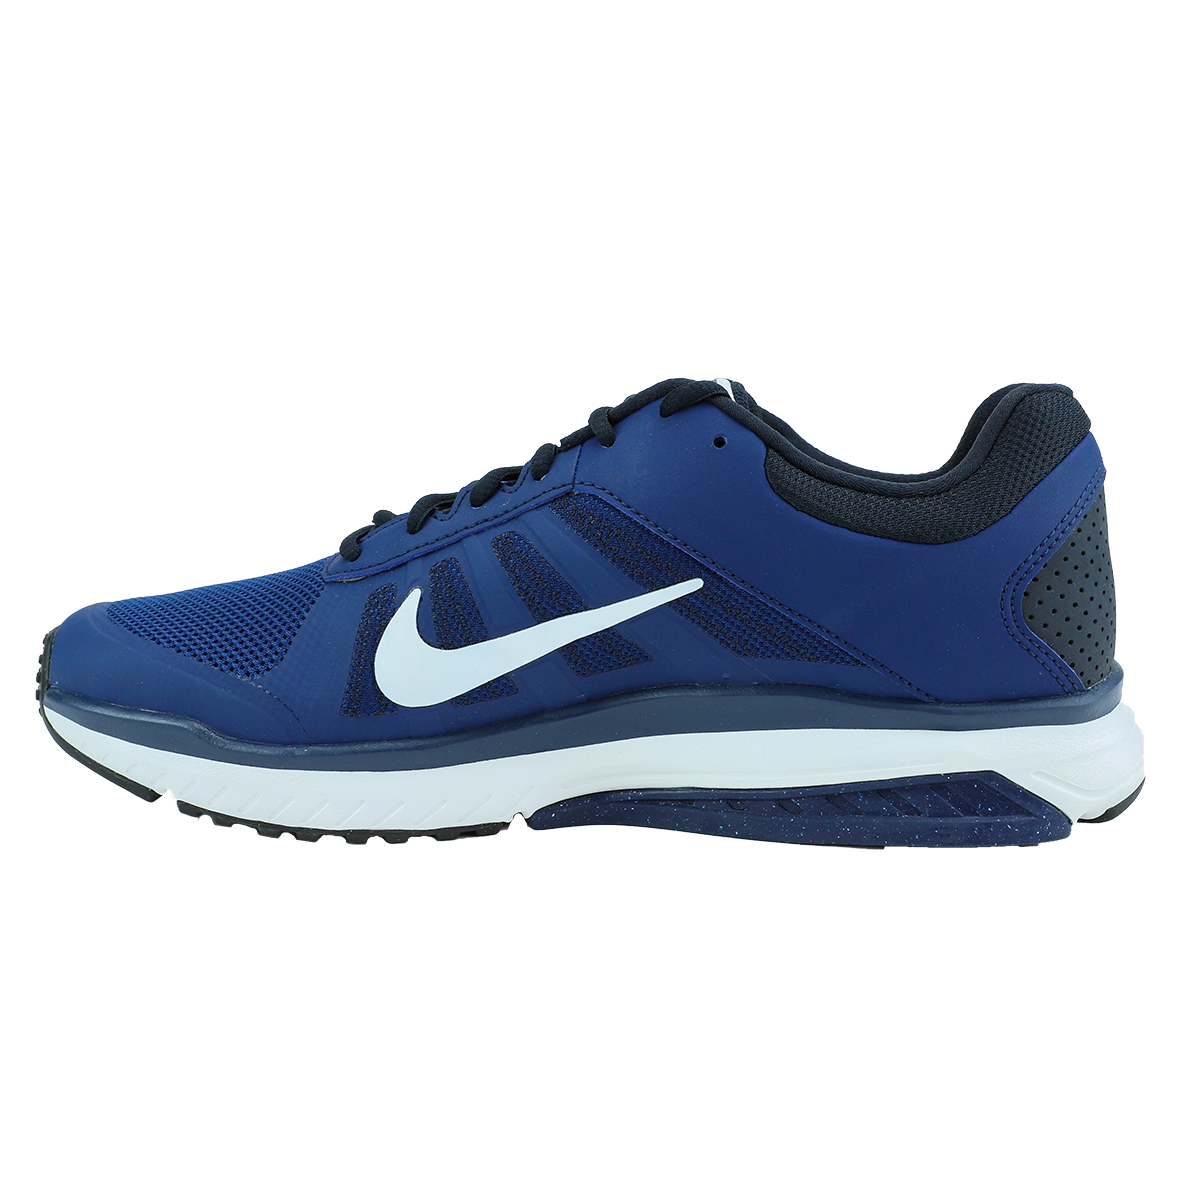 Nike-Men-039-s-Dart-12-MSL-Running-Shoes thumbnail 12